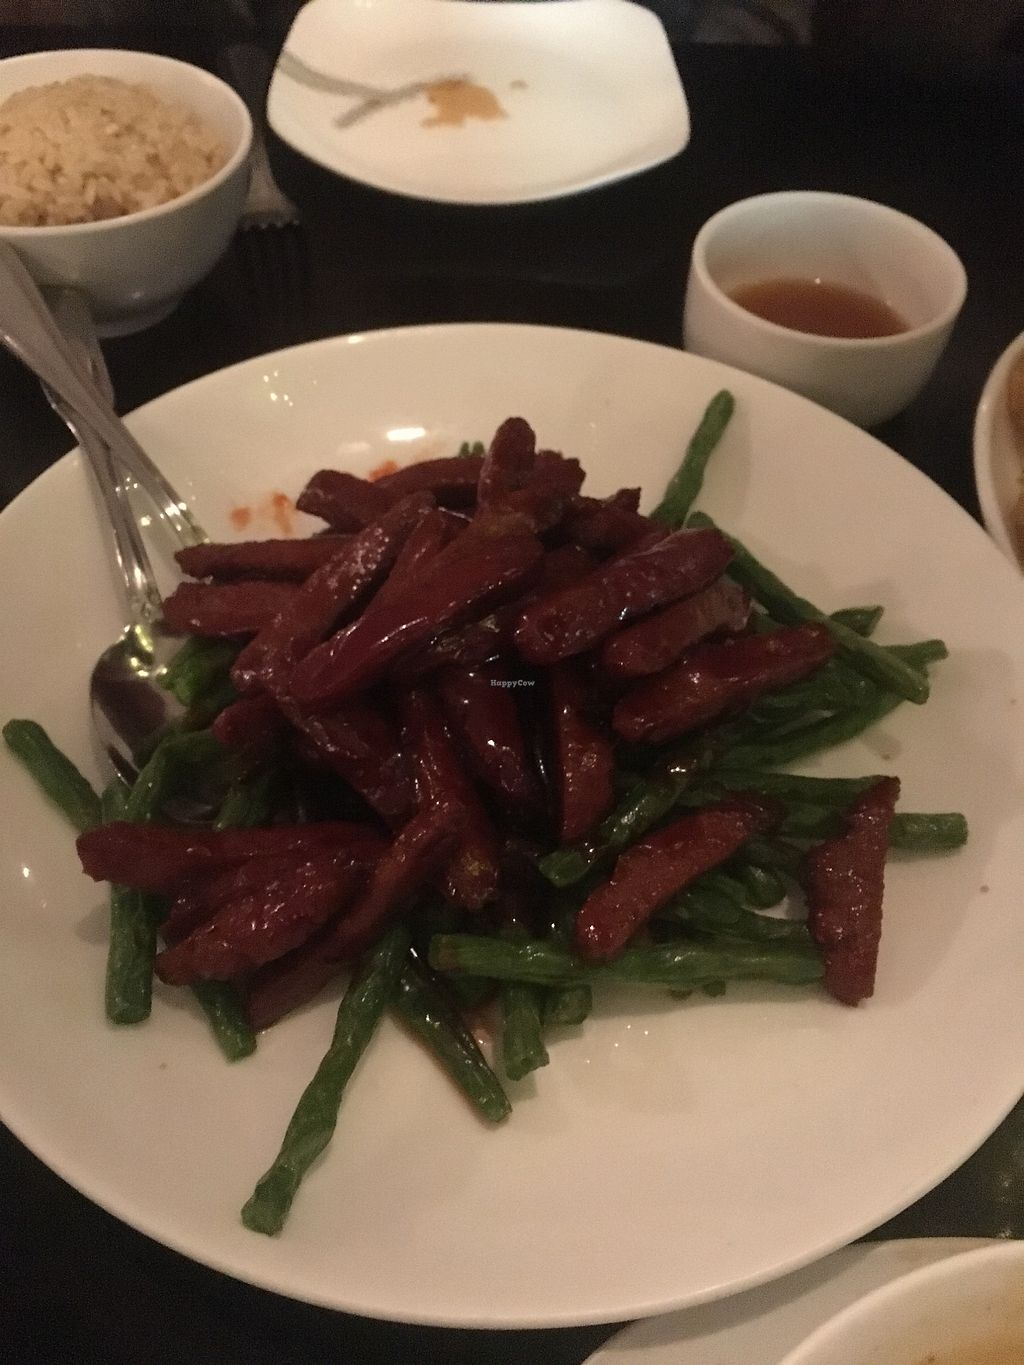 """Photo of Zhu's Pan-Asian Vegan Cuisine  by <a href=""""/members/profile/770veg"""">770veg</a> <br/>Spare ribs <br/> December 14, 2017  - <a href='/contact/abuse/image/61169/335372'>Report</a>"""